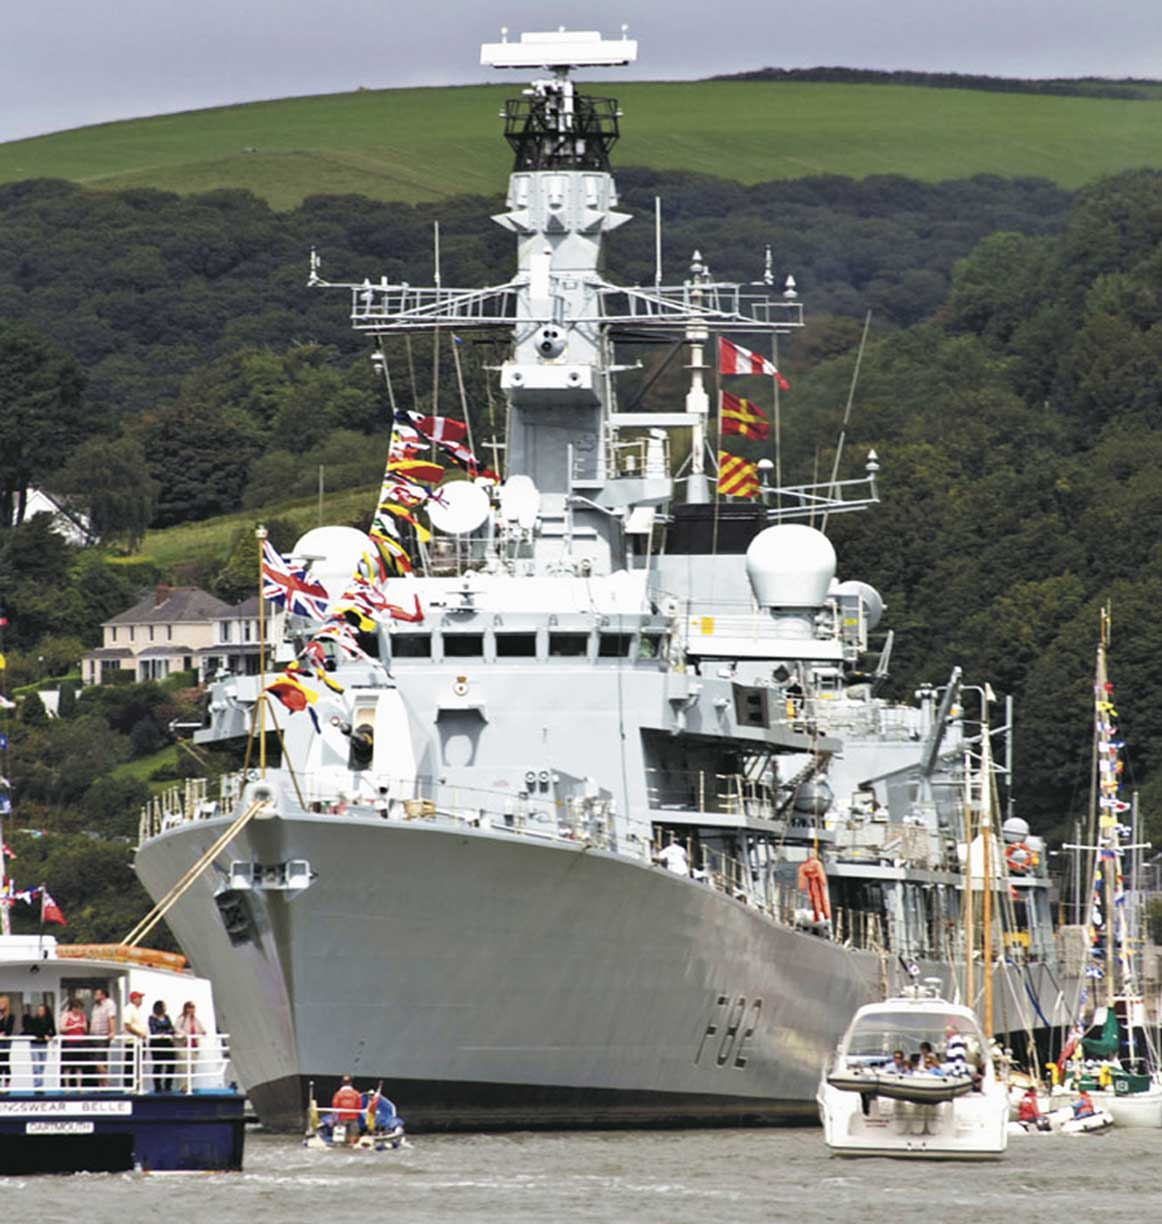 The frigate HMS Somerset showing the flag in home waters. Photo: Nigel Andrews.